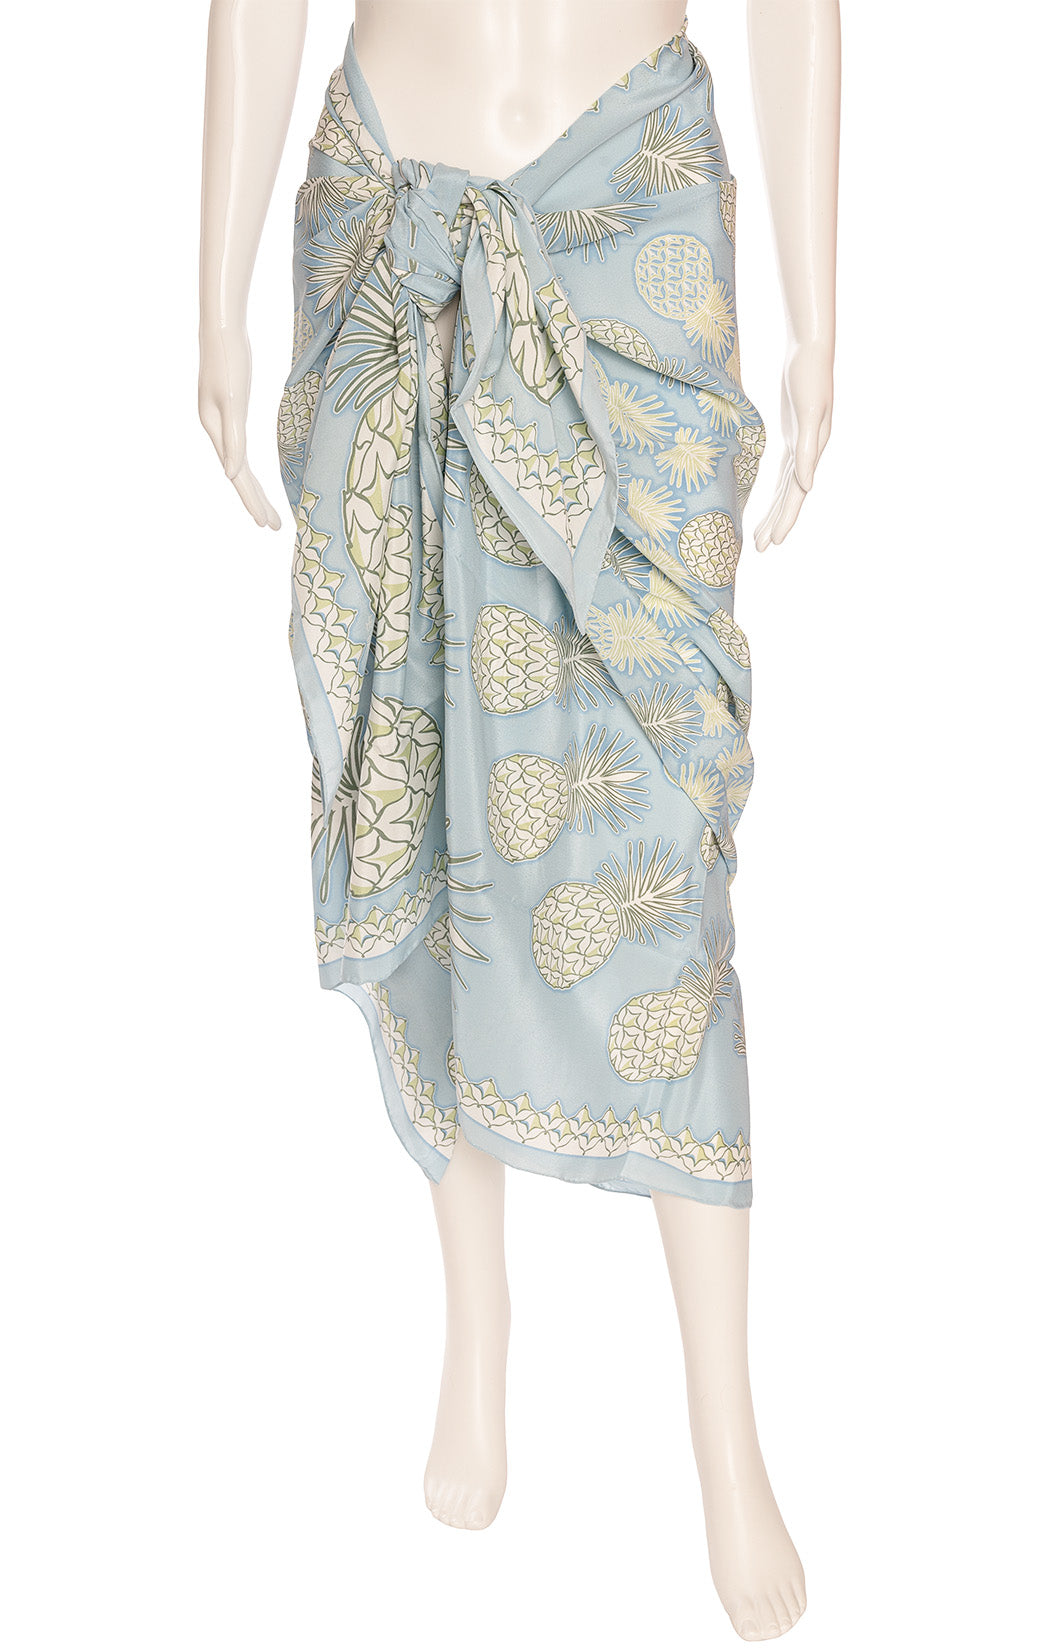 LOTTY B MYSTIQUE with tags  Sarong Size: O/S